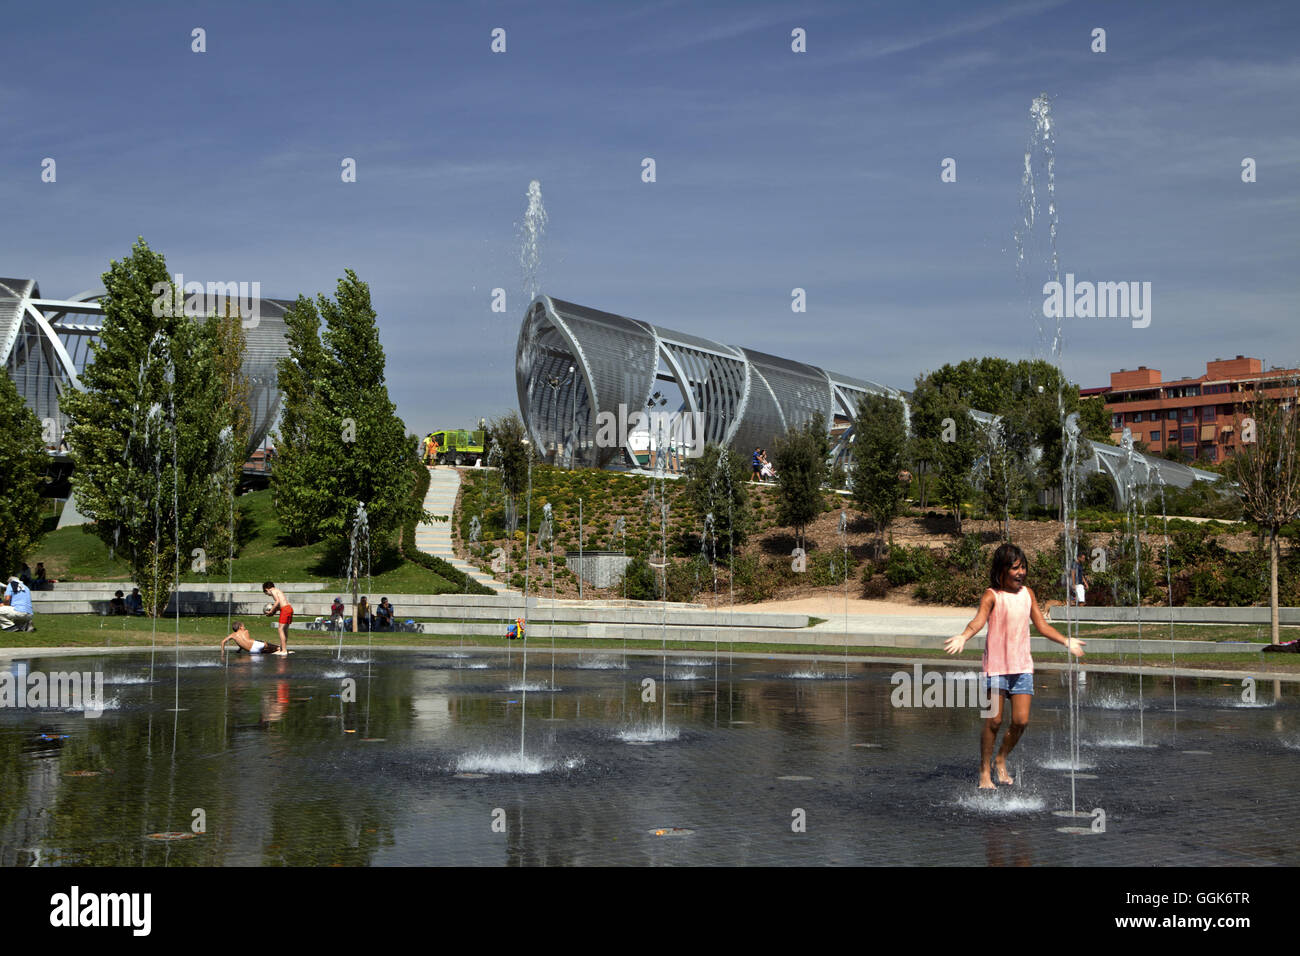 Water fountains in a park on the Rio Manzanares, Madrid, Spain Stock Photo